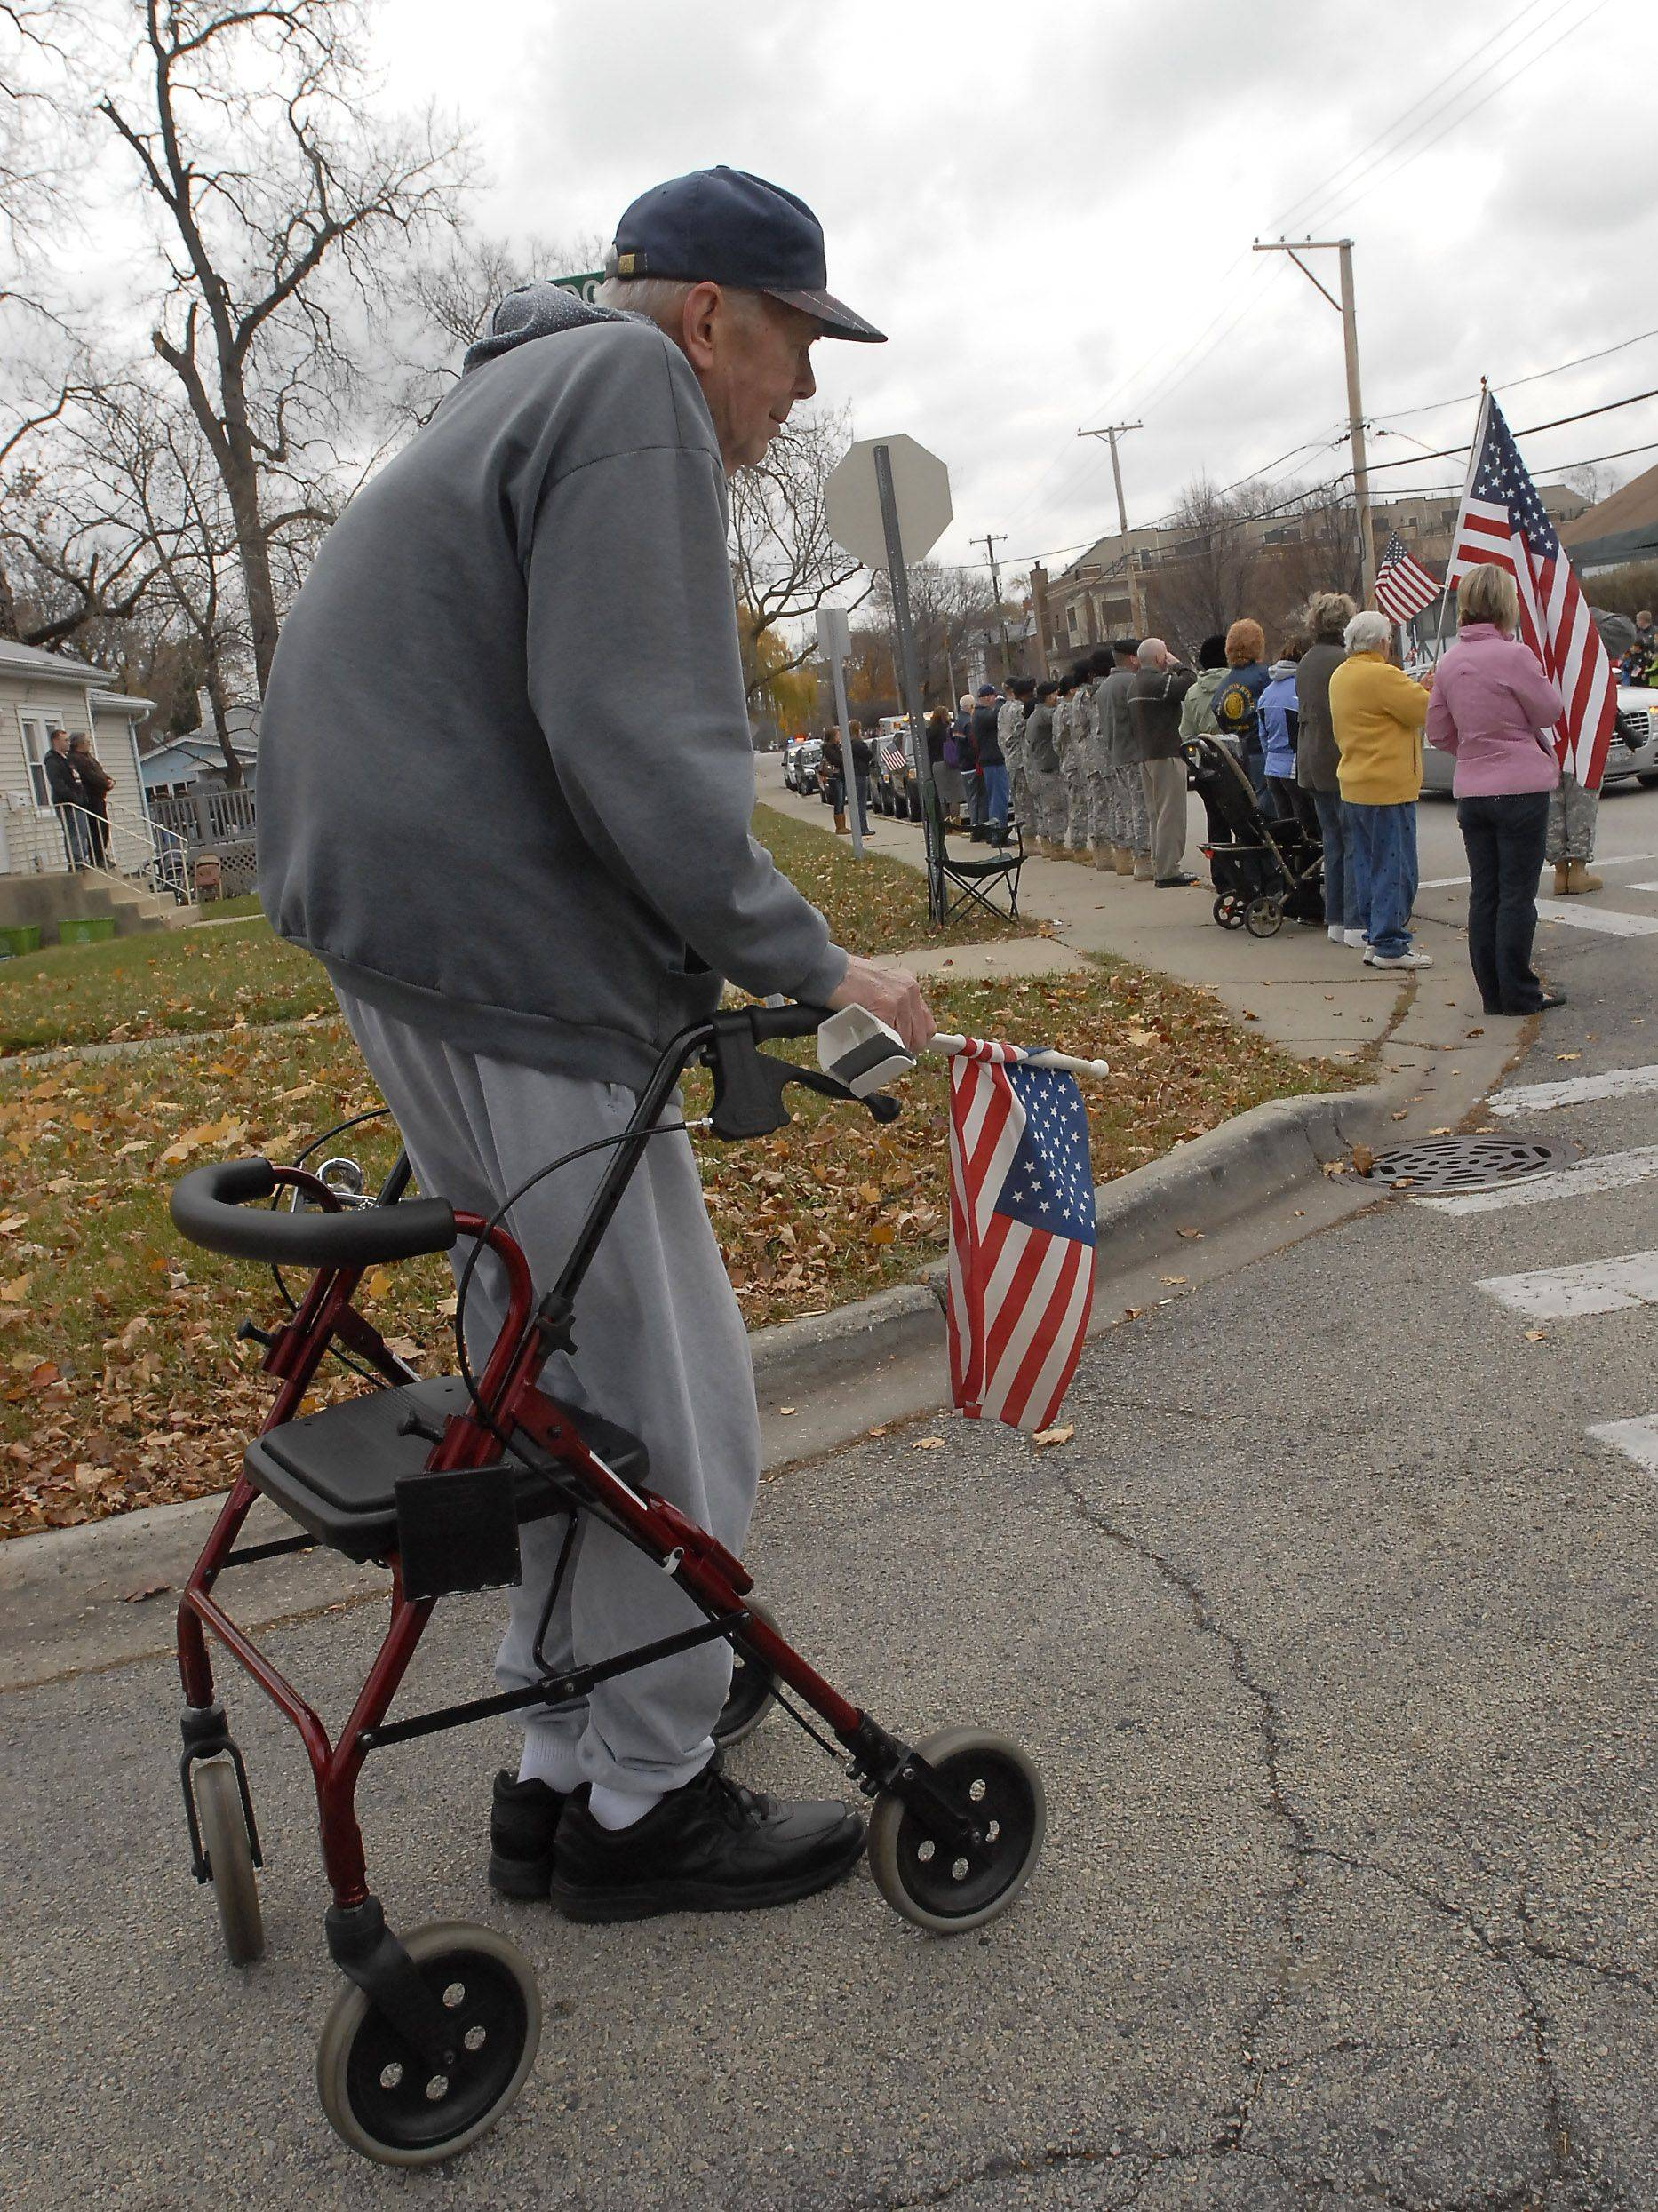 Korean War veteran Roger Steingraber of Arlington Heights bows his head Thursday as the body of Marine James Bray Stack passes by on Miner Street in Arlington Heights.